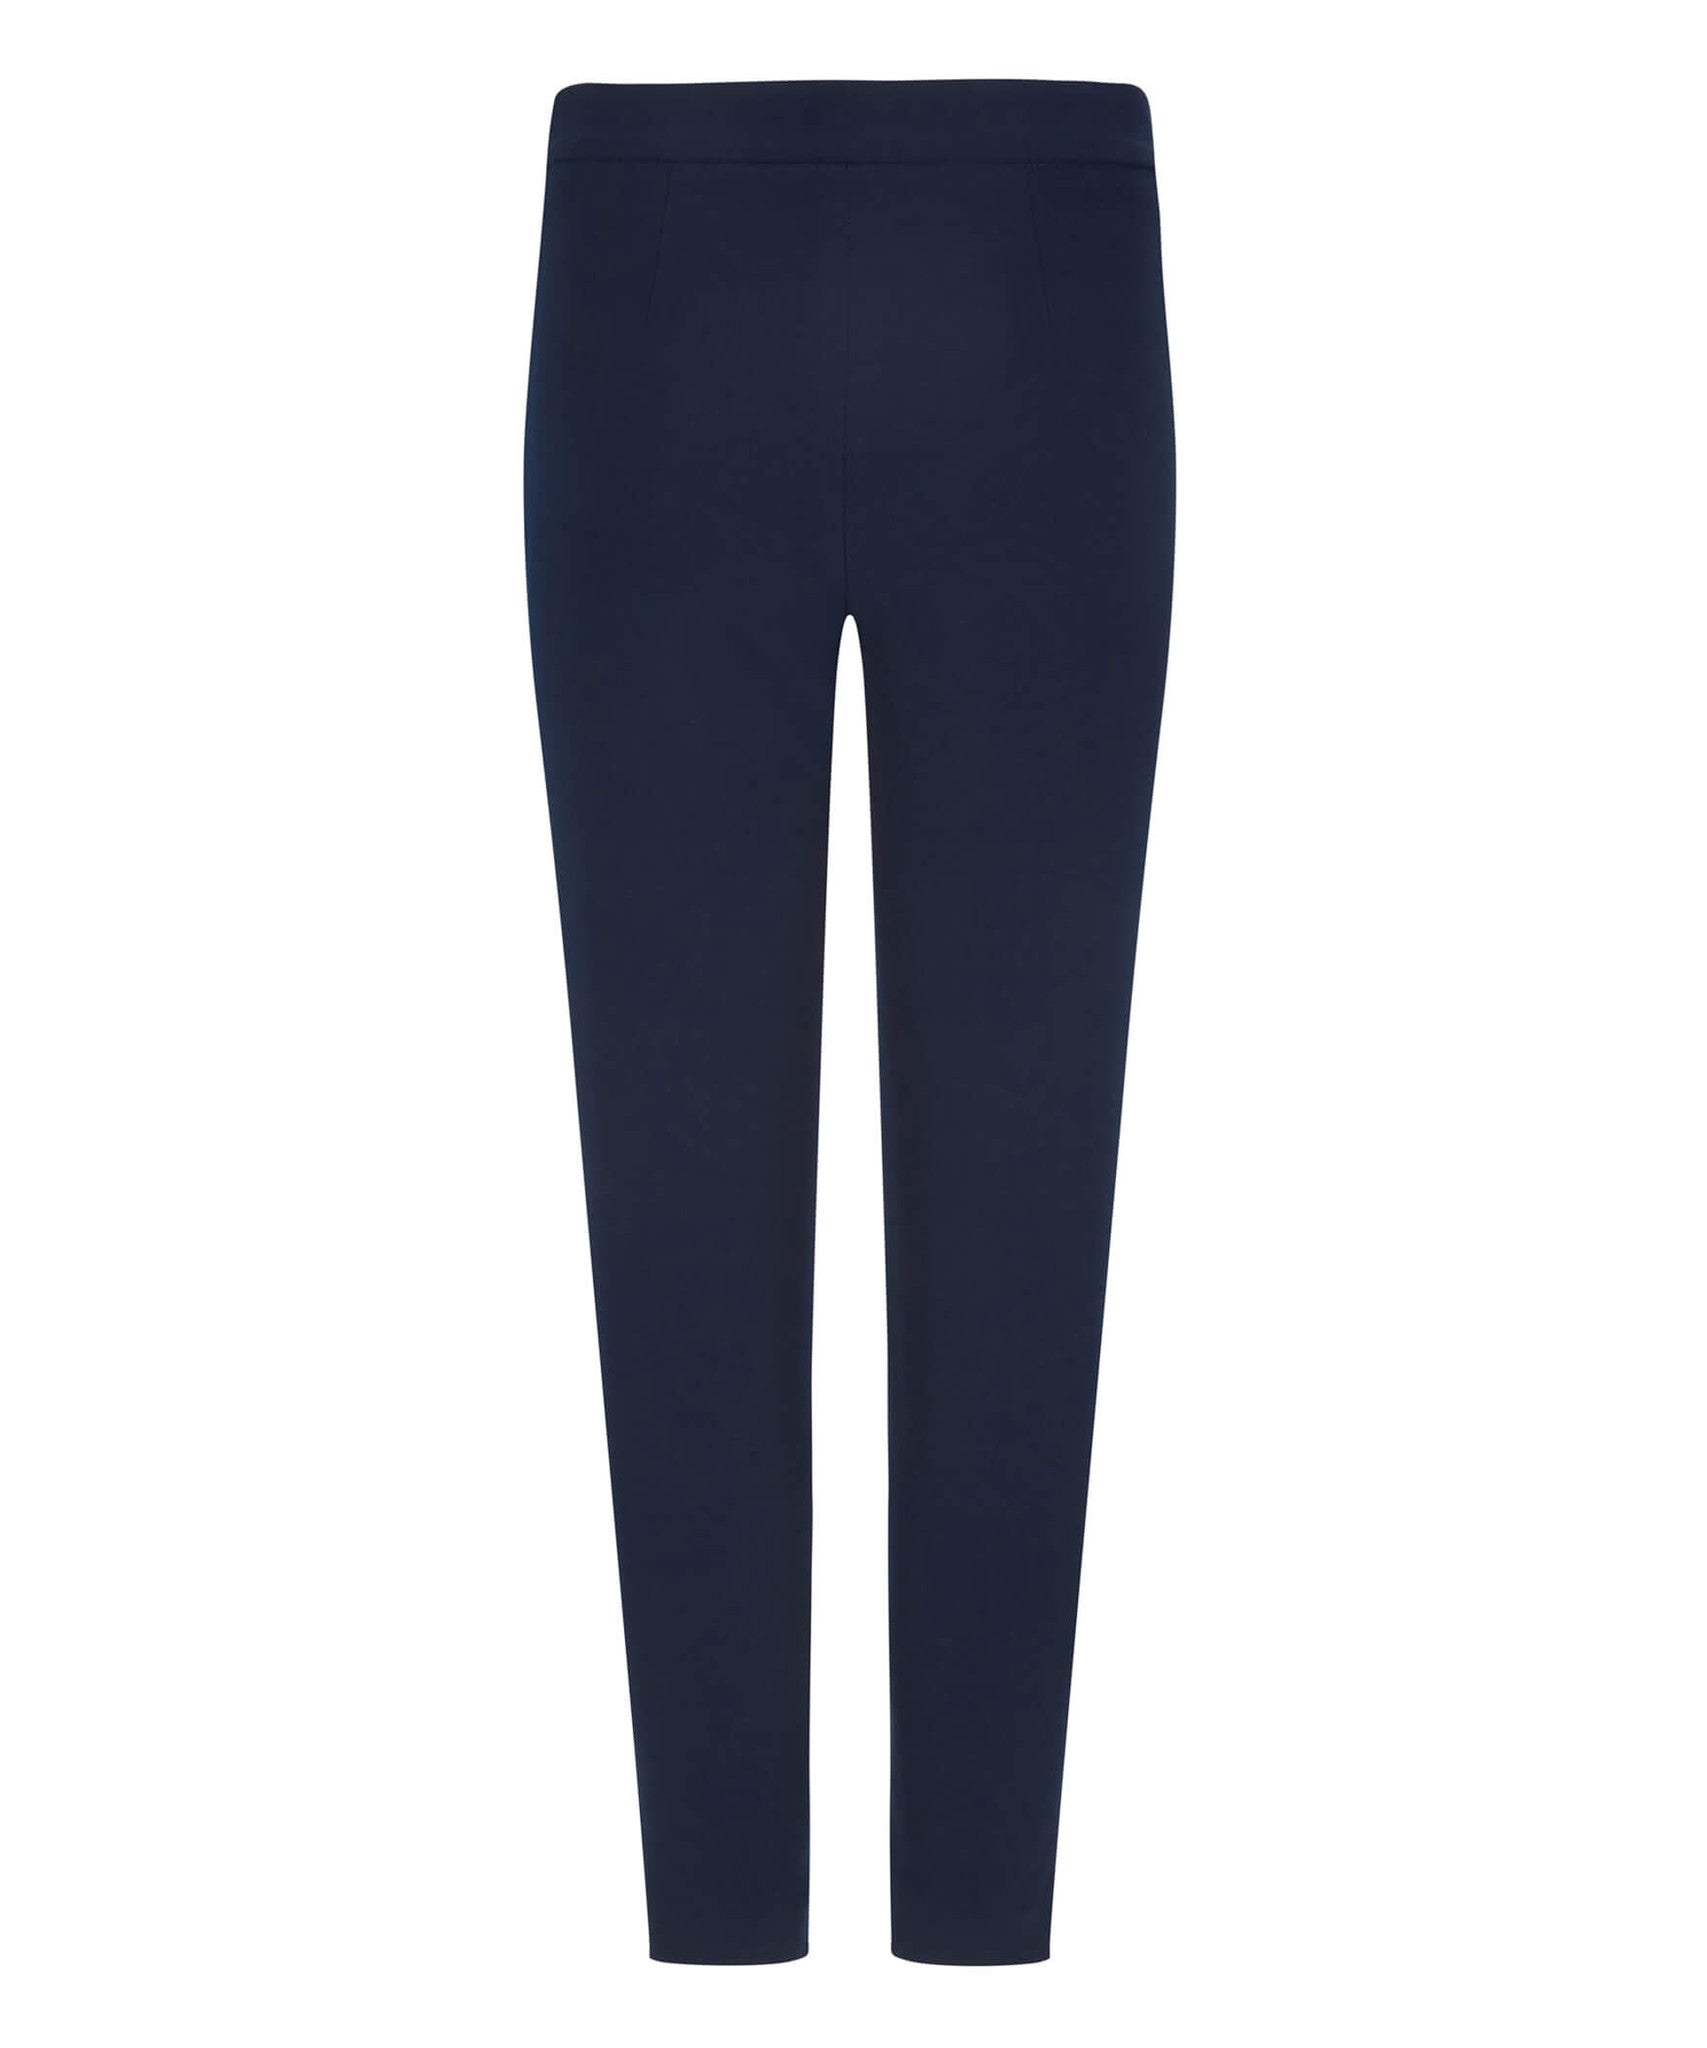 Petite Navy Blue Pocket Trousers - Jennifer-Anne